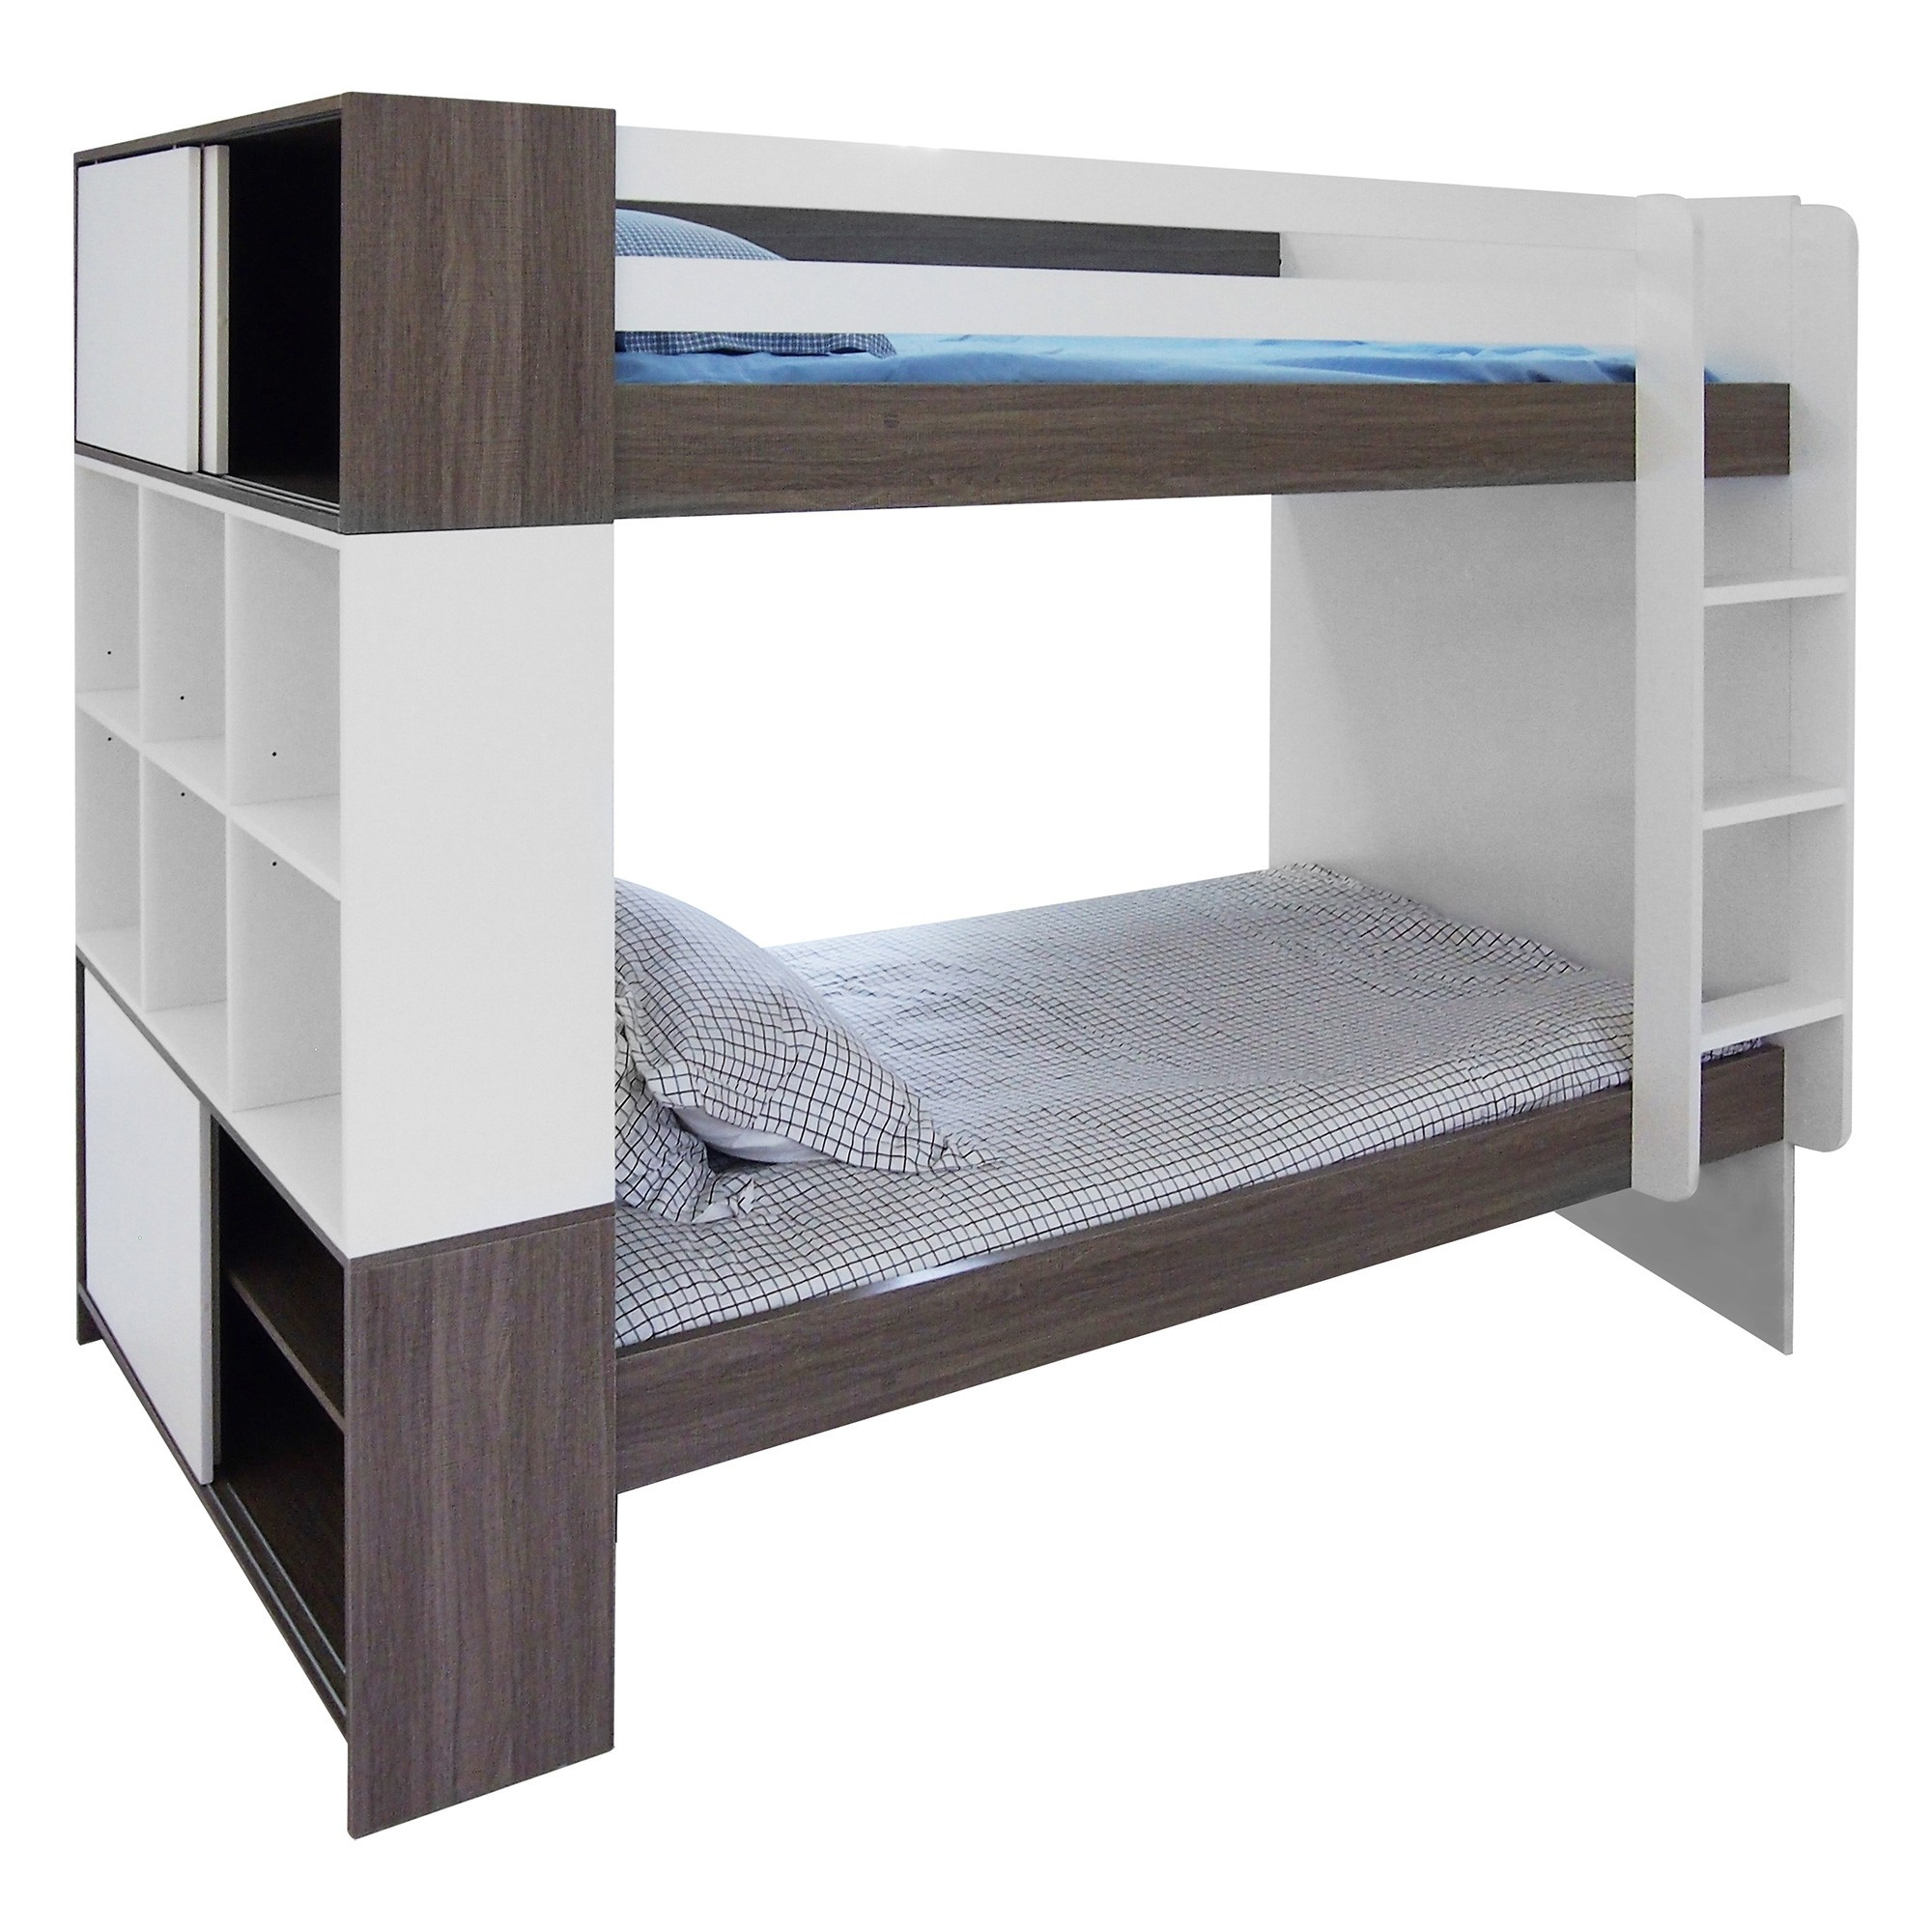 Kube Bunk Bed with Storage Shelf, King Single